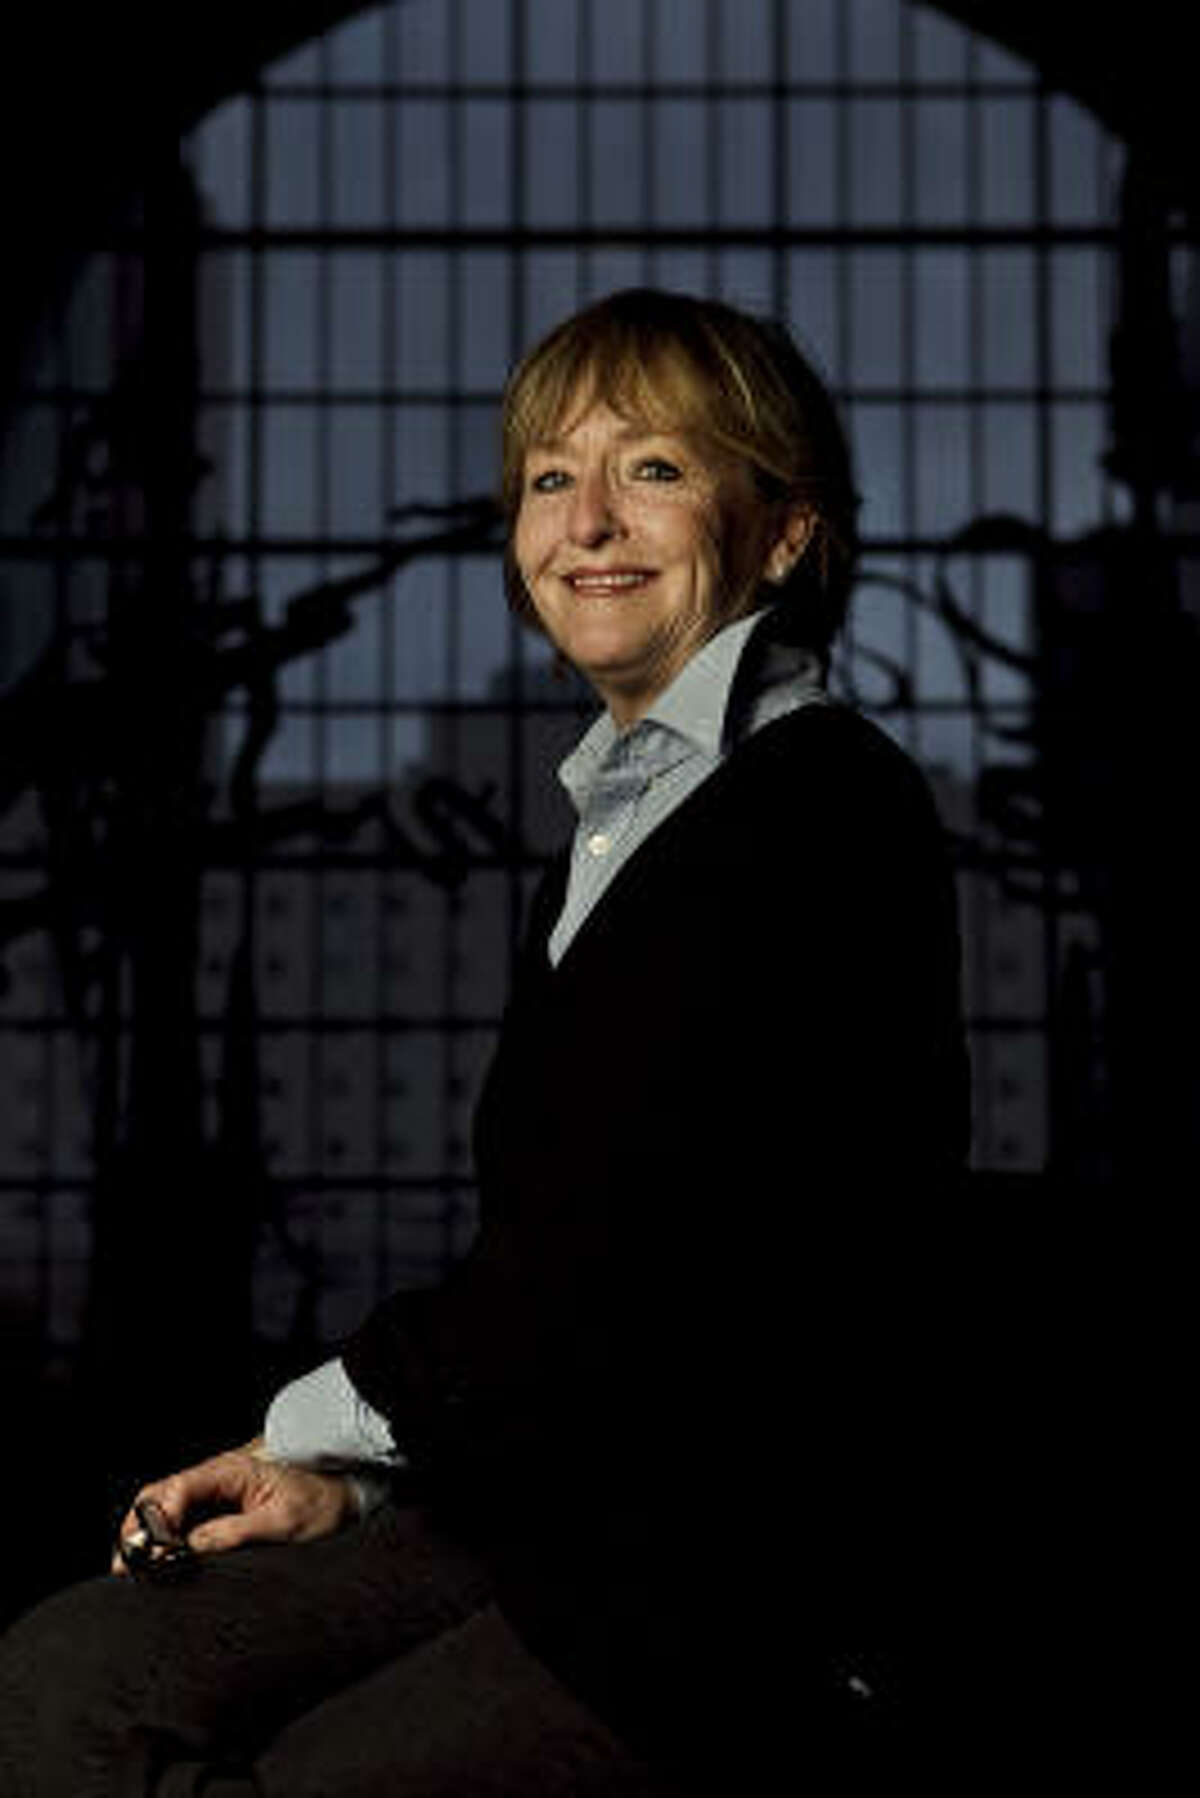 Beloved mezzo-soprano Frederica von Stade makes her farewell to the opera stage with a role that was created for her in Houston Grand Opera's Dead Man Walking.